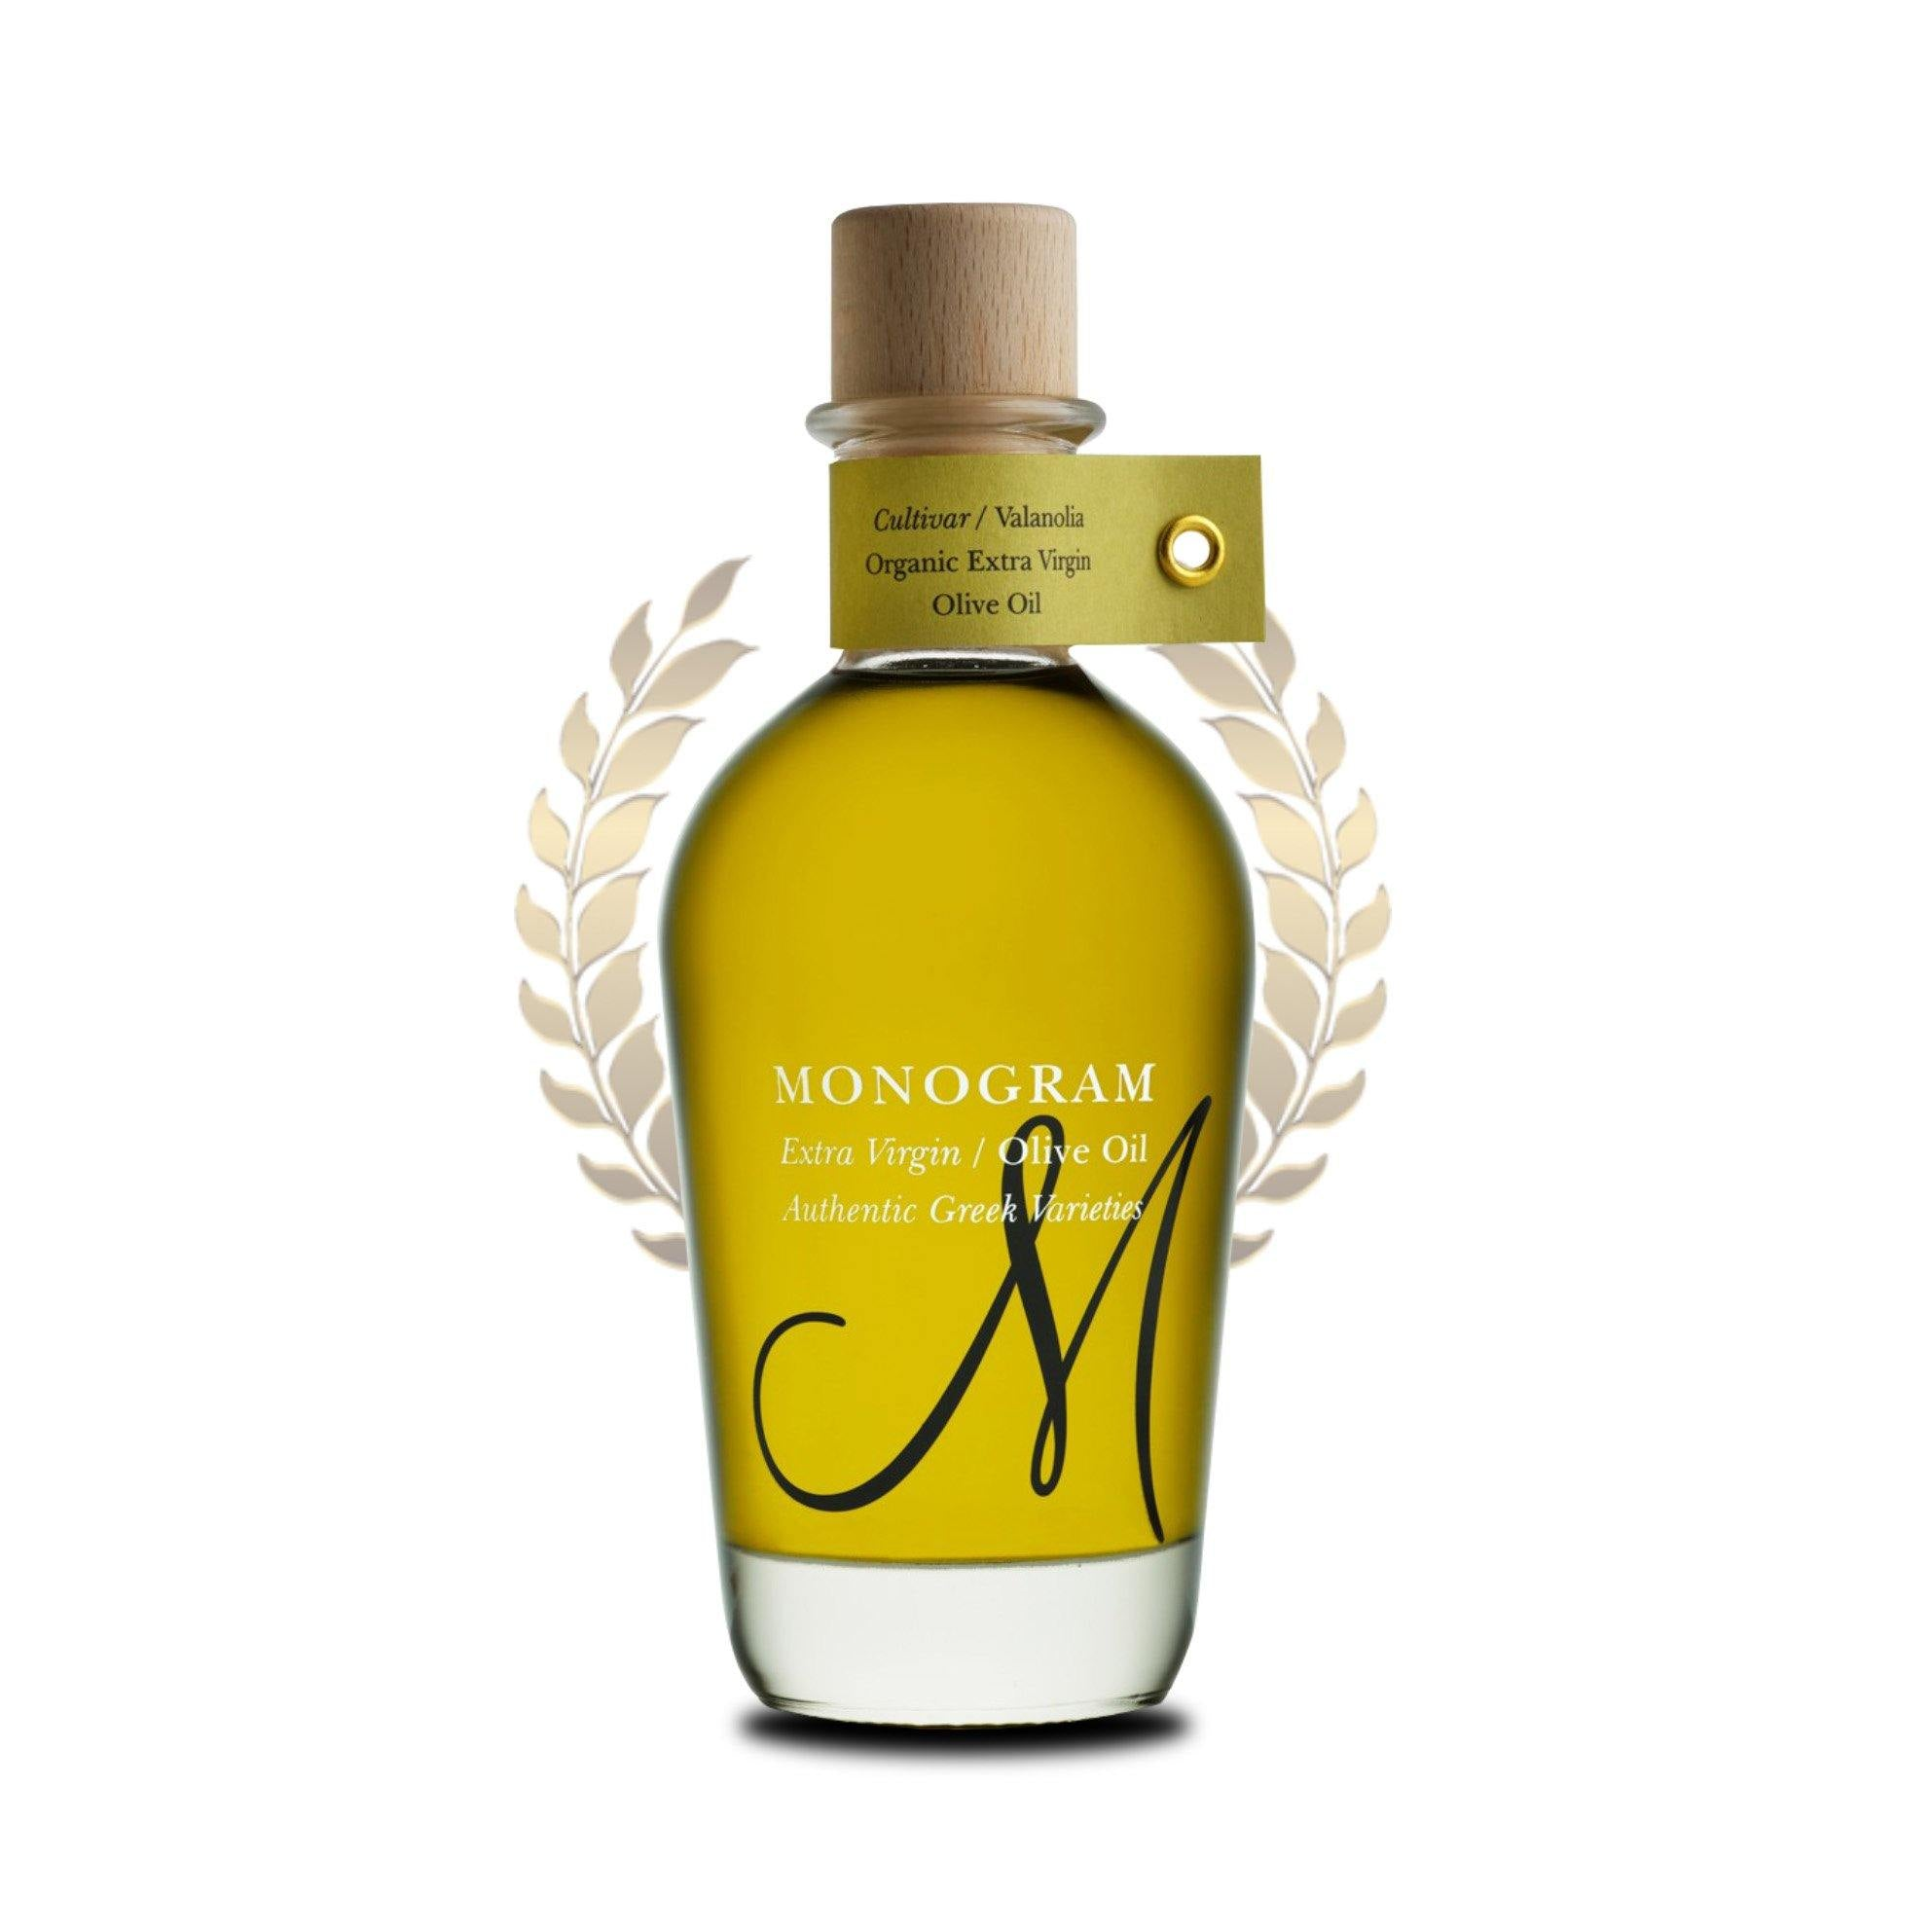 MONOGRAM Extra natives BIO Olivenöl- Valanolia 250ml - Loyal Taste